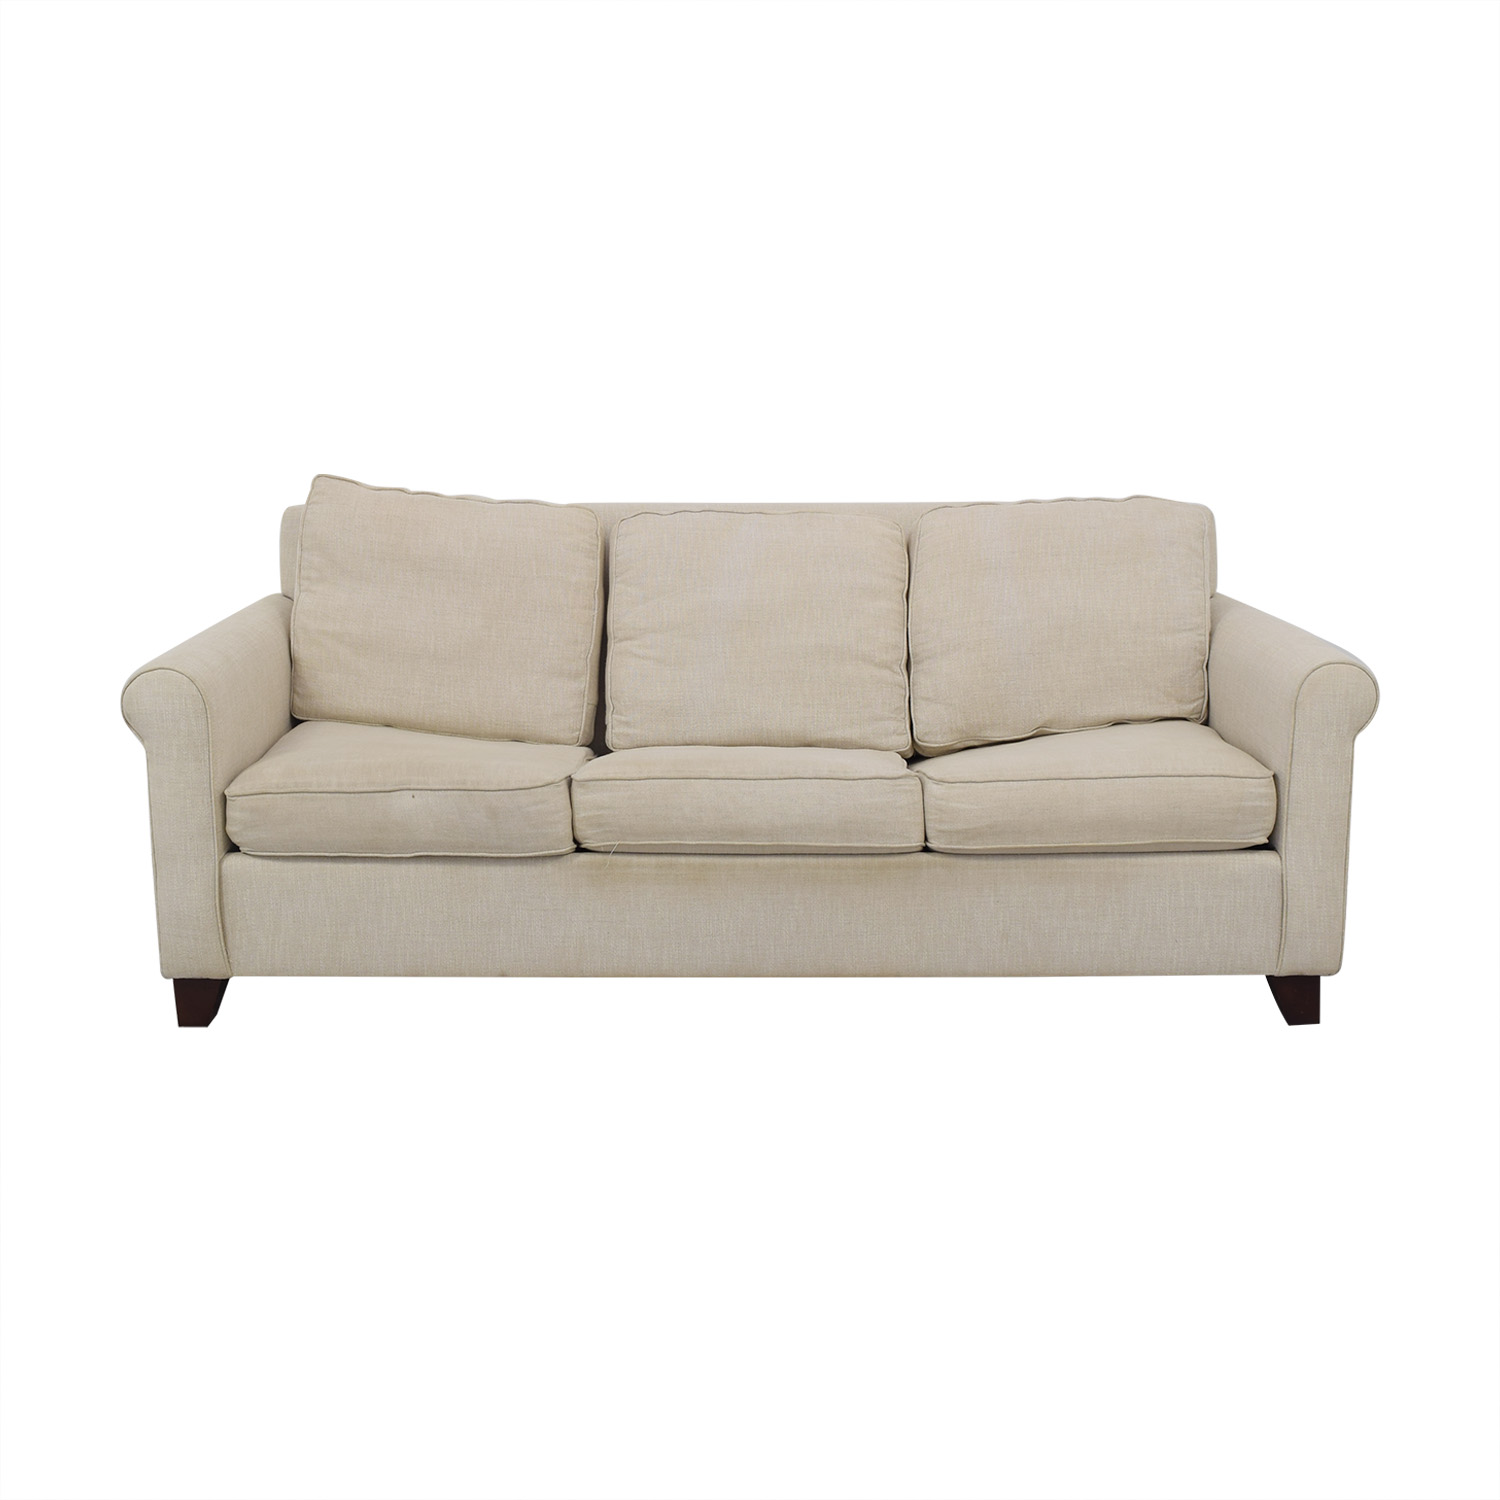 West Elm Cameron Roll Arm Upholstered Sleeper Sofa West Elm